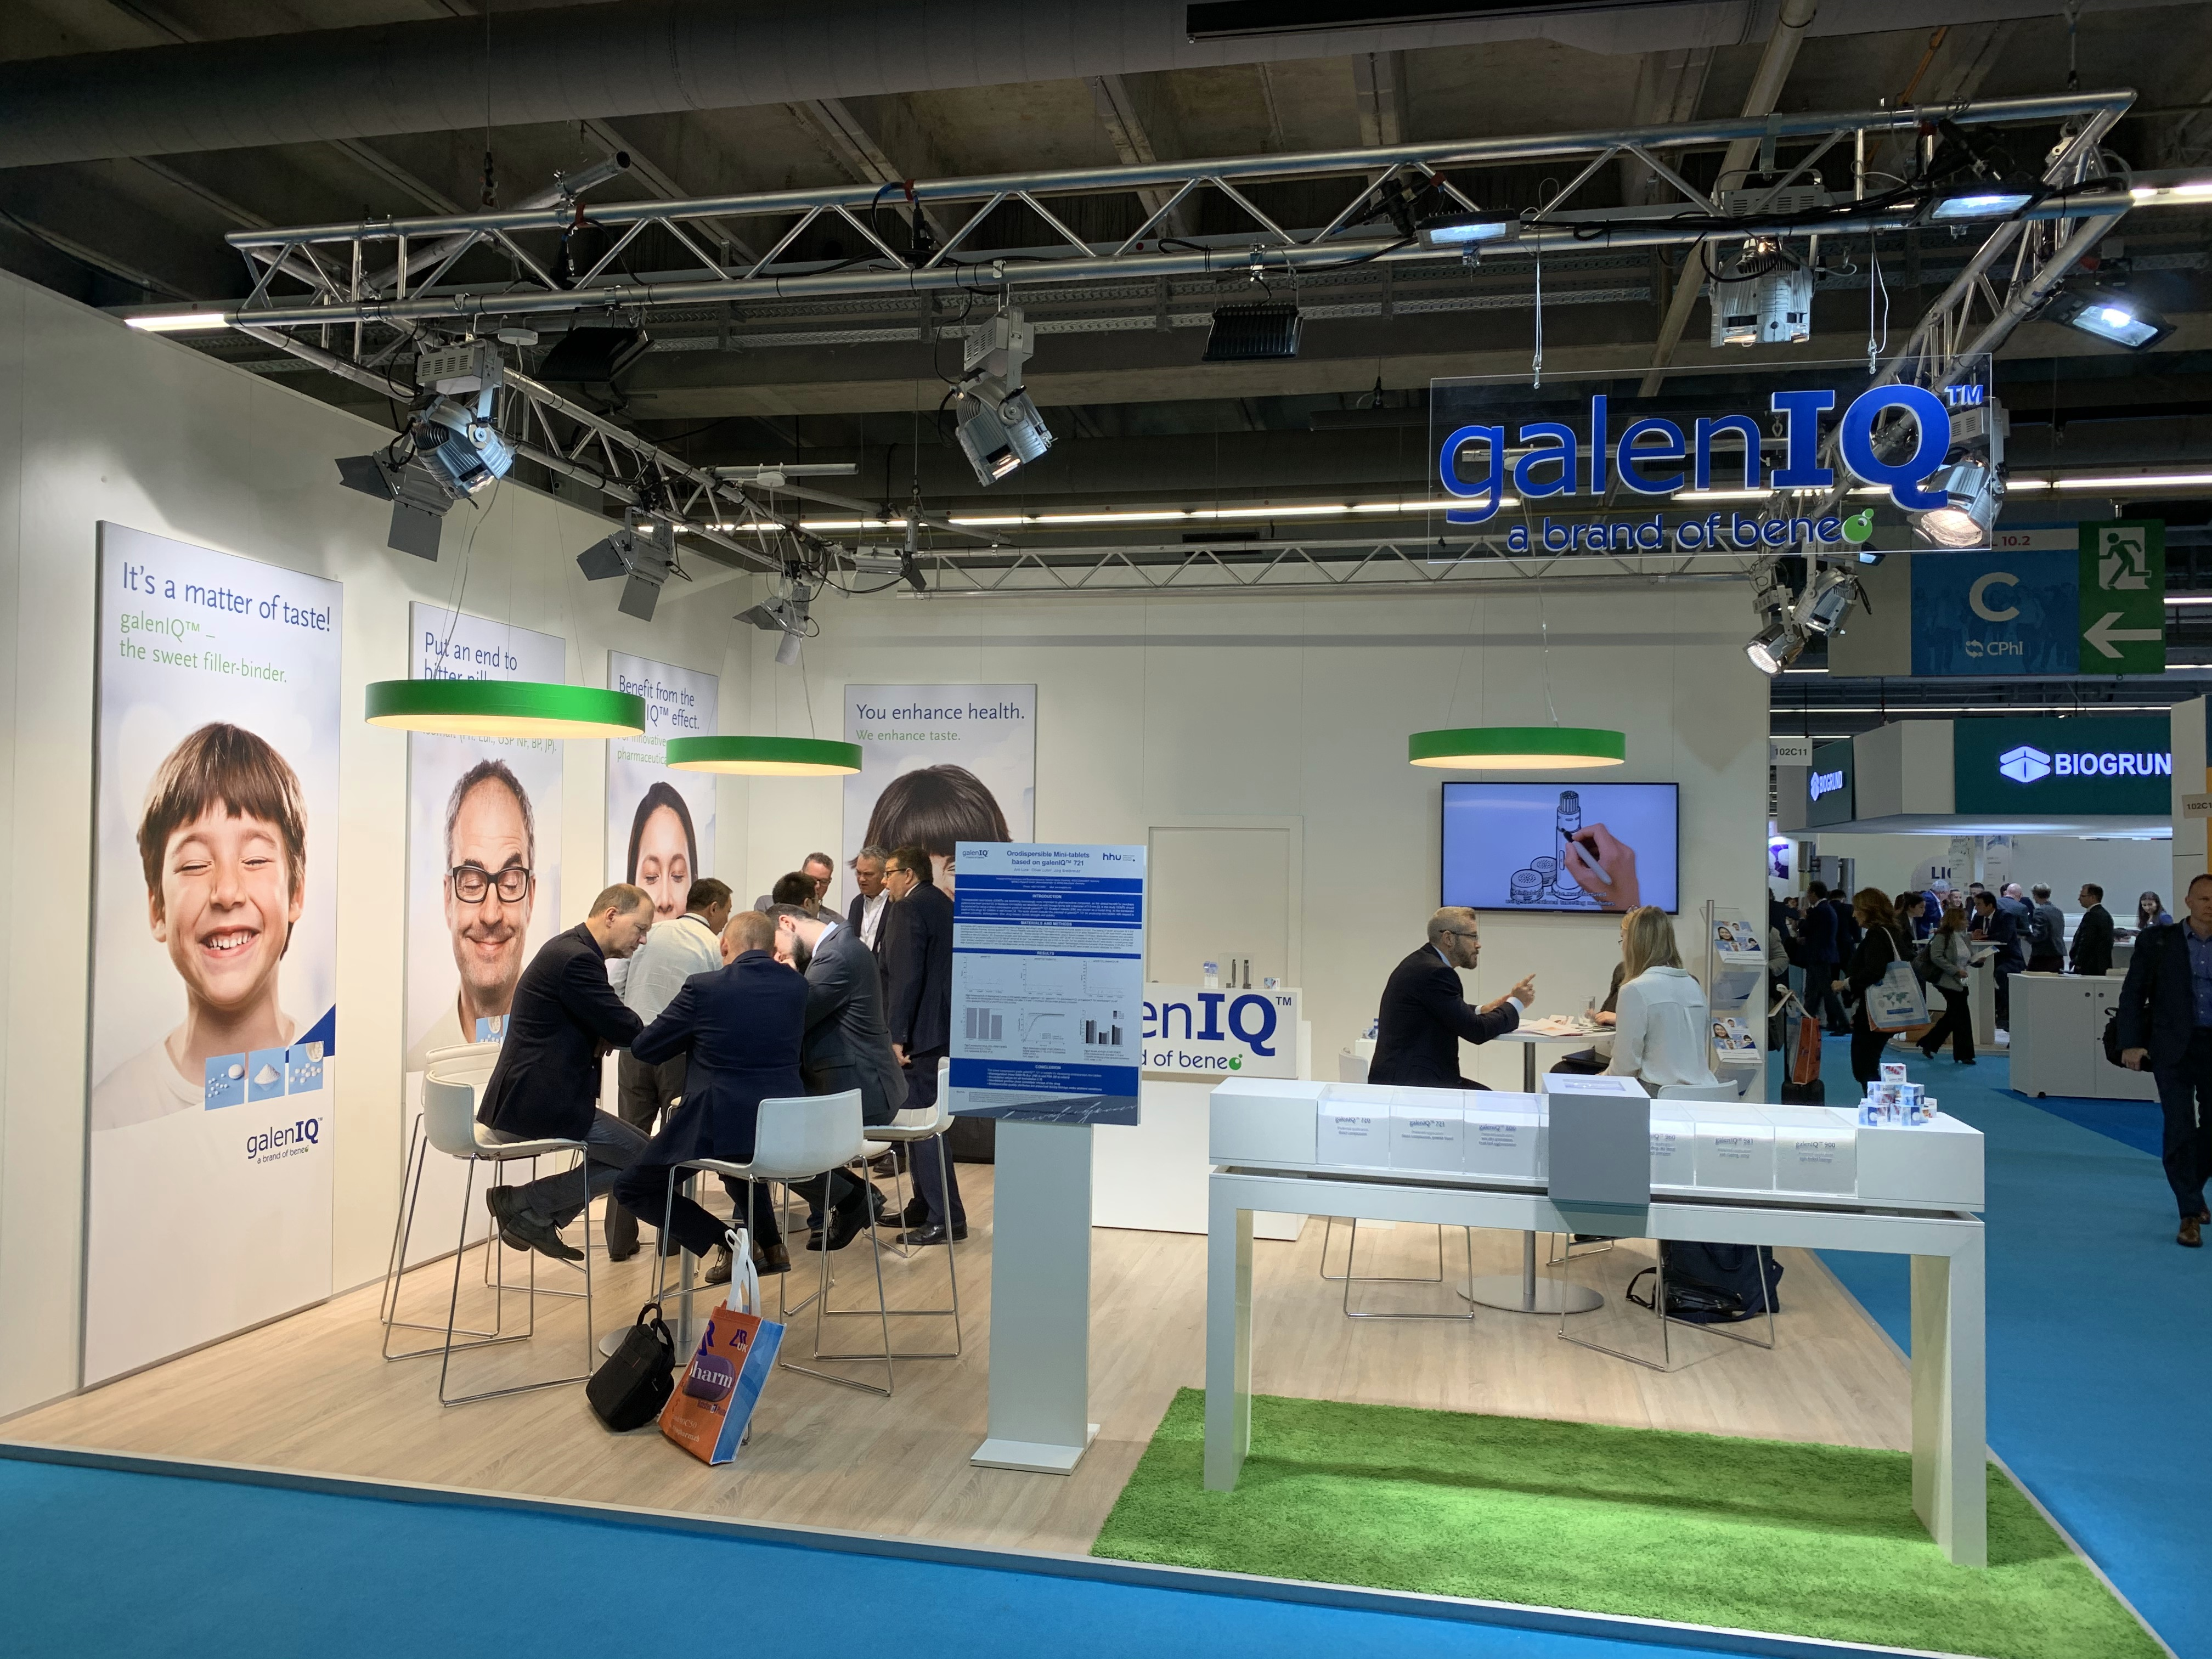 Impressions from the excipients hall at CPhI 2019 in Frankfurt